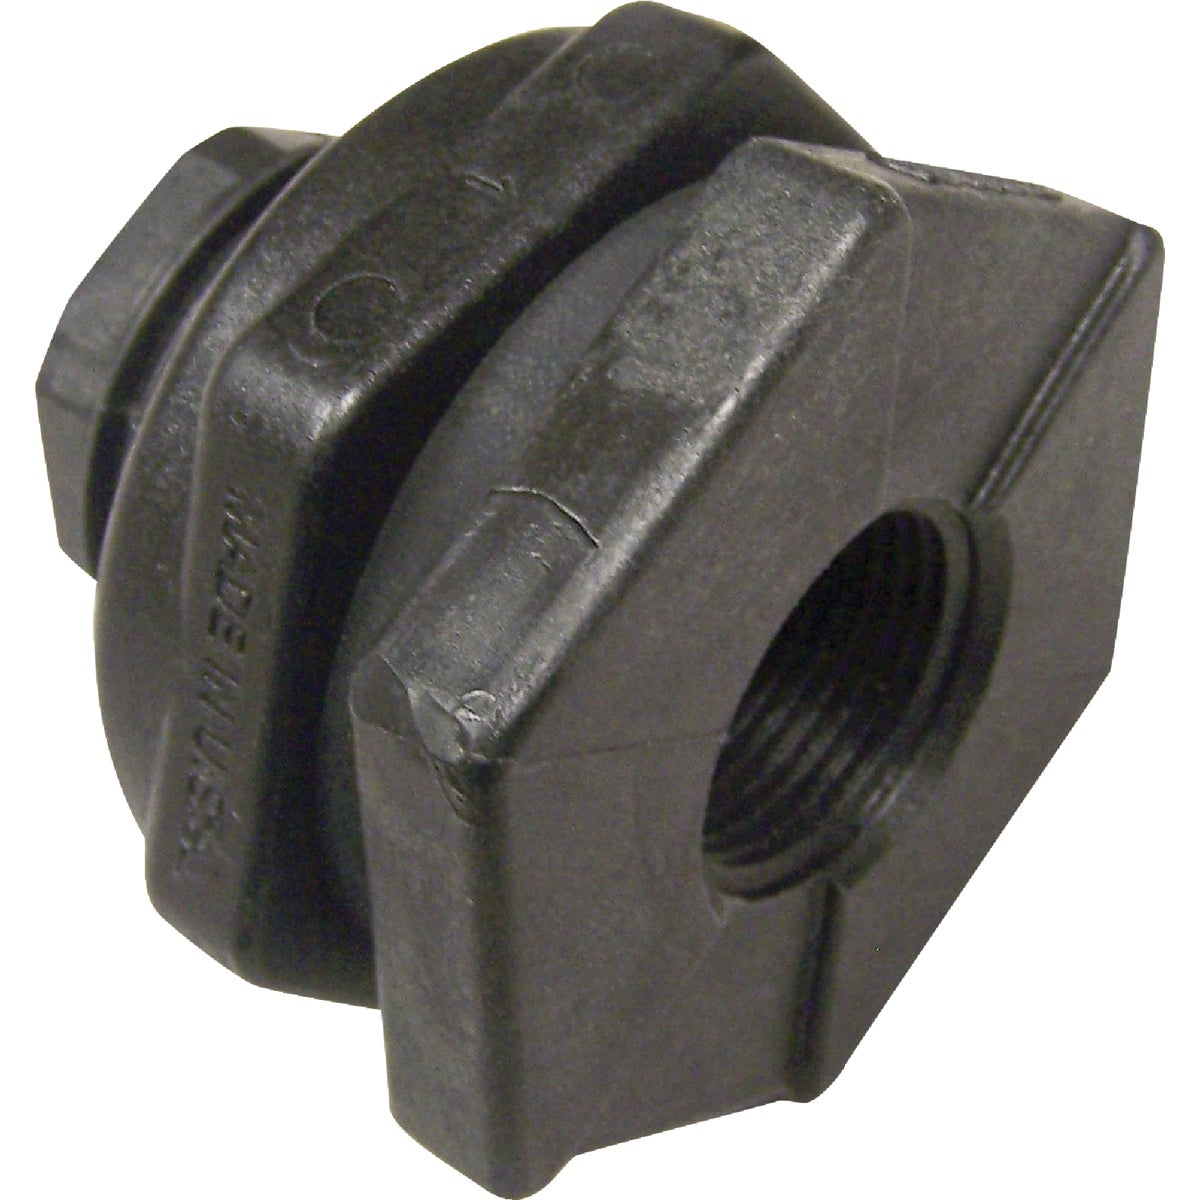 3/4 BULKHEAD ADAPTER - 38907 by Genova Inc